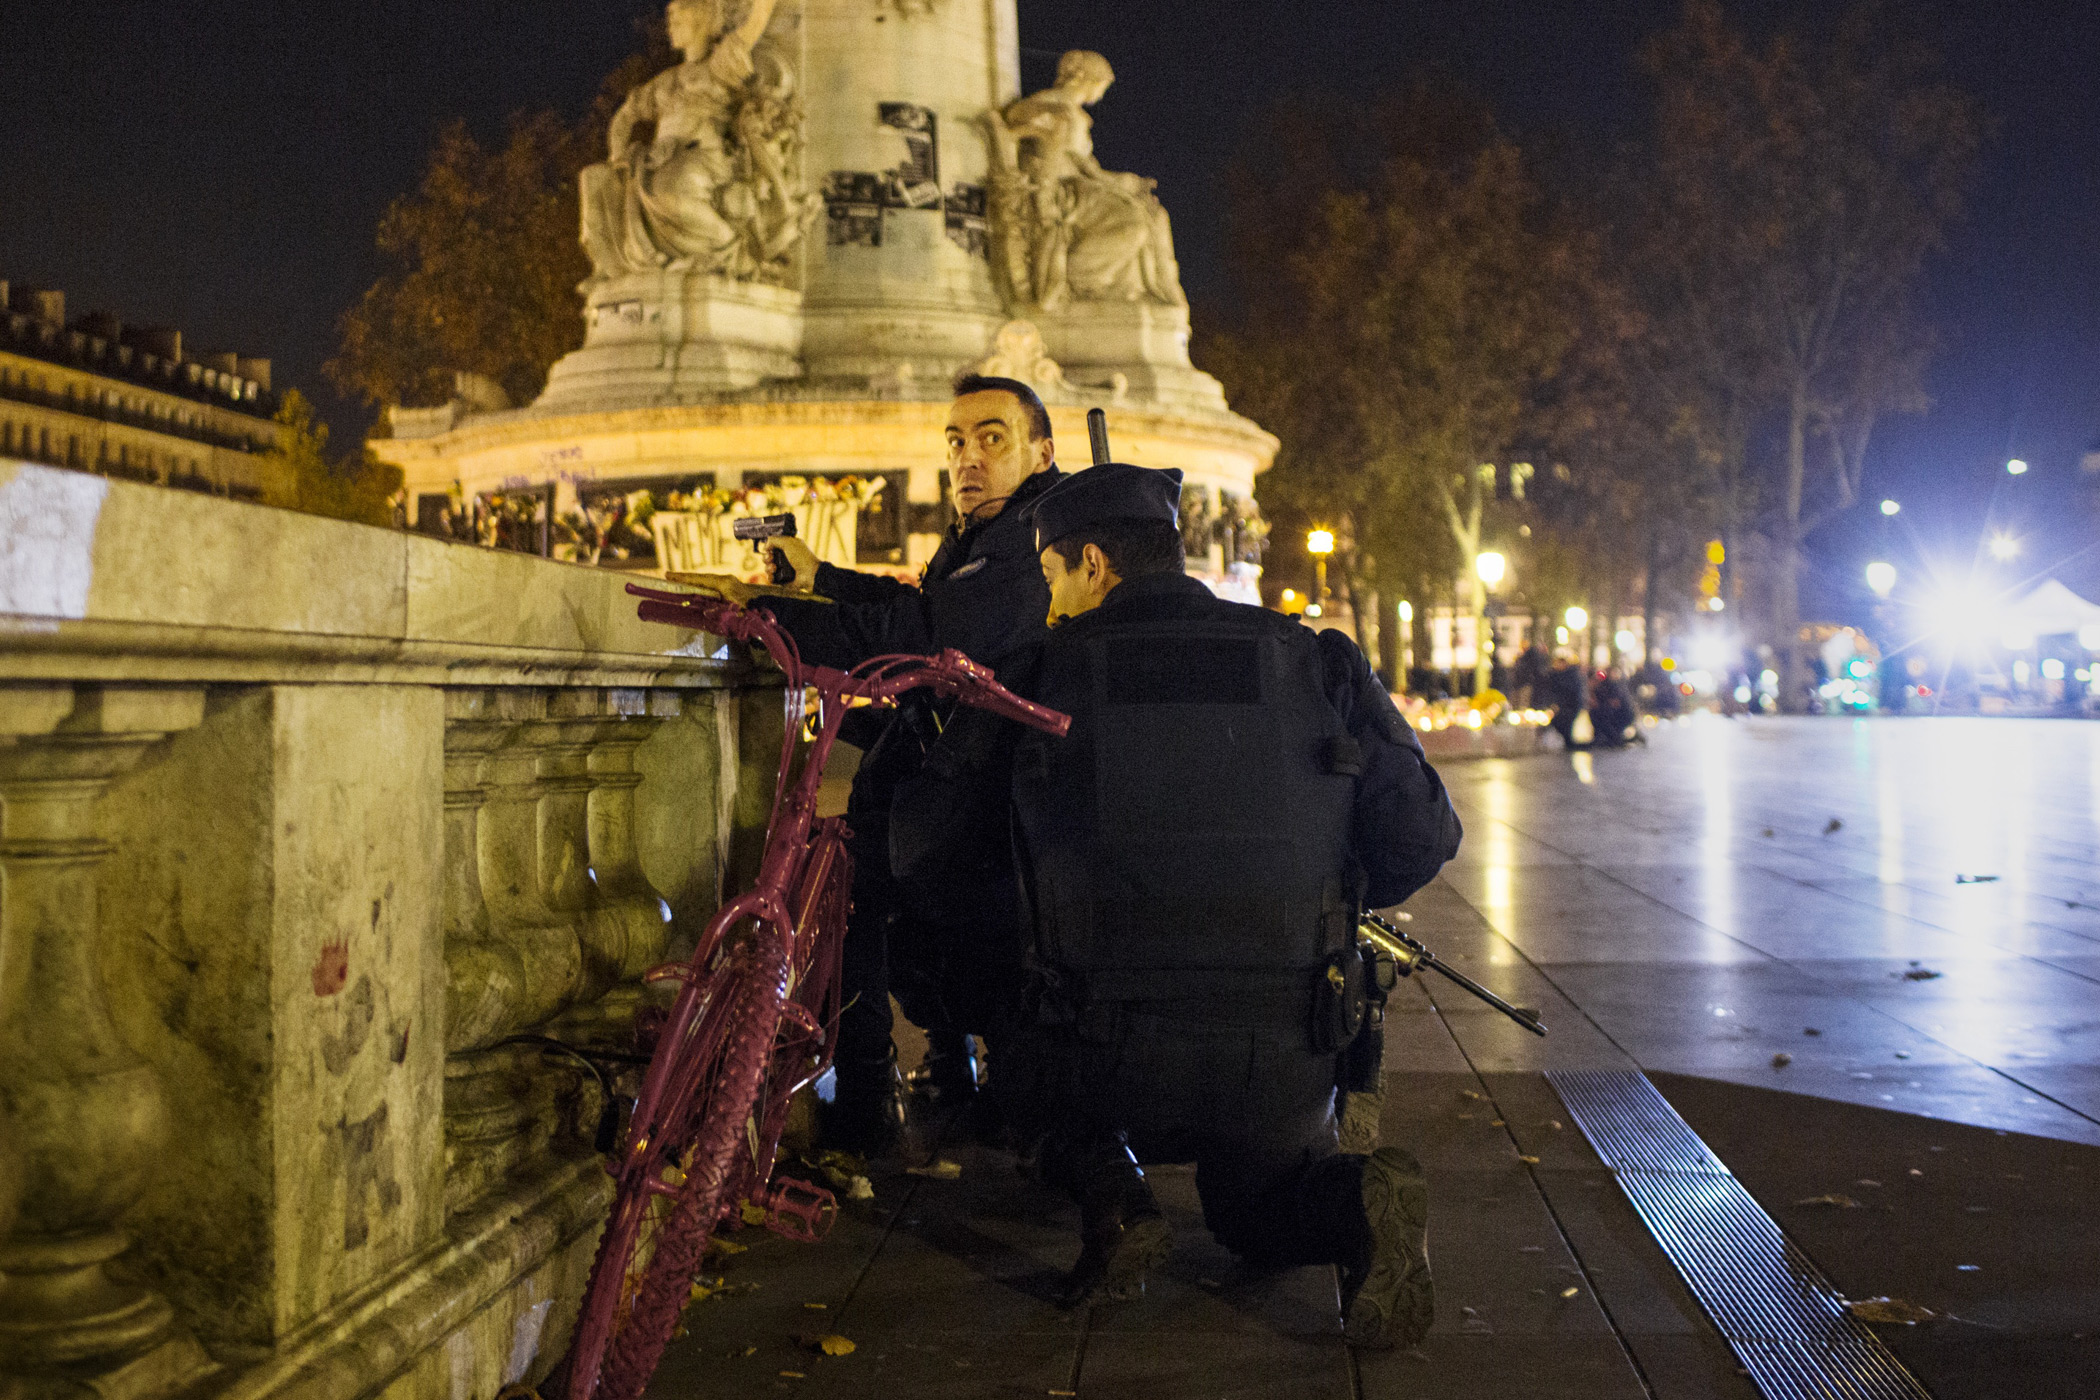 Armed police take aim in Paris' Place de la République during a false alarm on Nov. 15 after terrorist attacks struck the capital city on the night of November 13, 2015. From  See the Heartbreaking Portraits of Parisians in Mourning